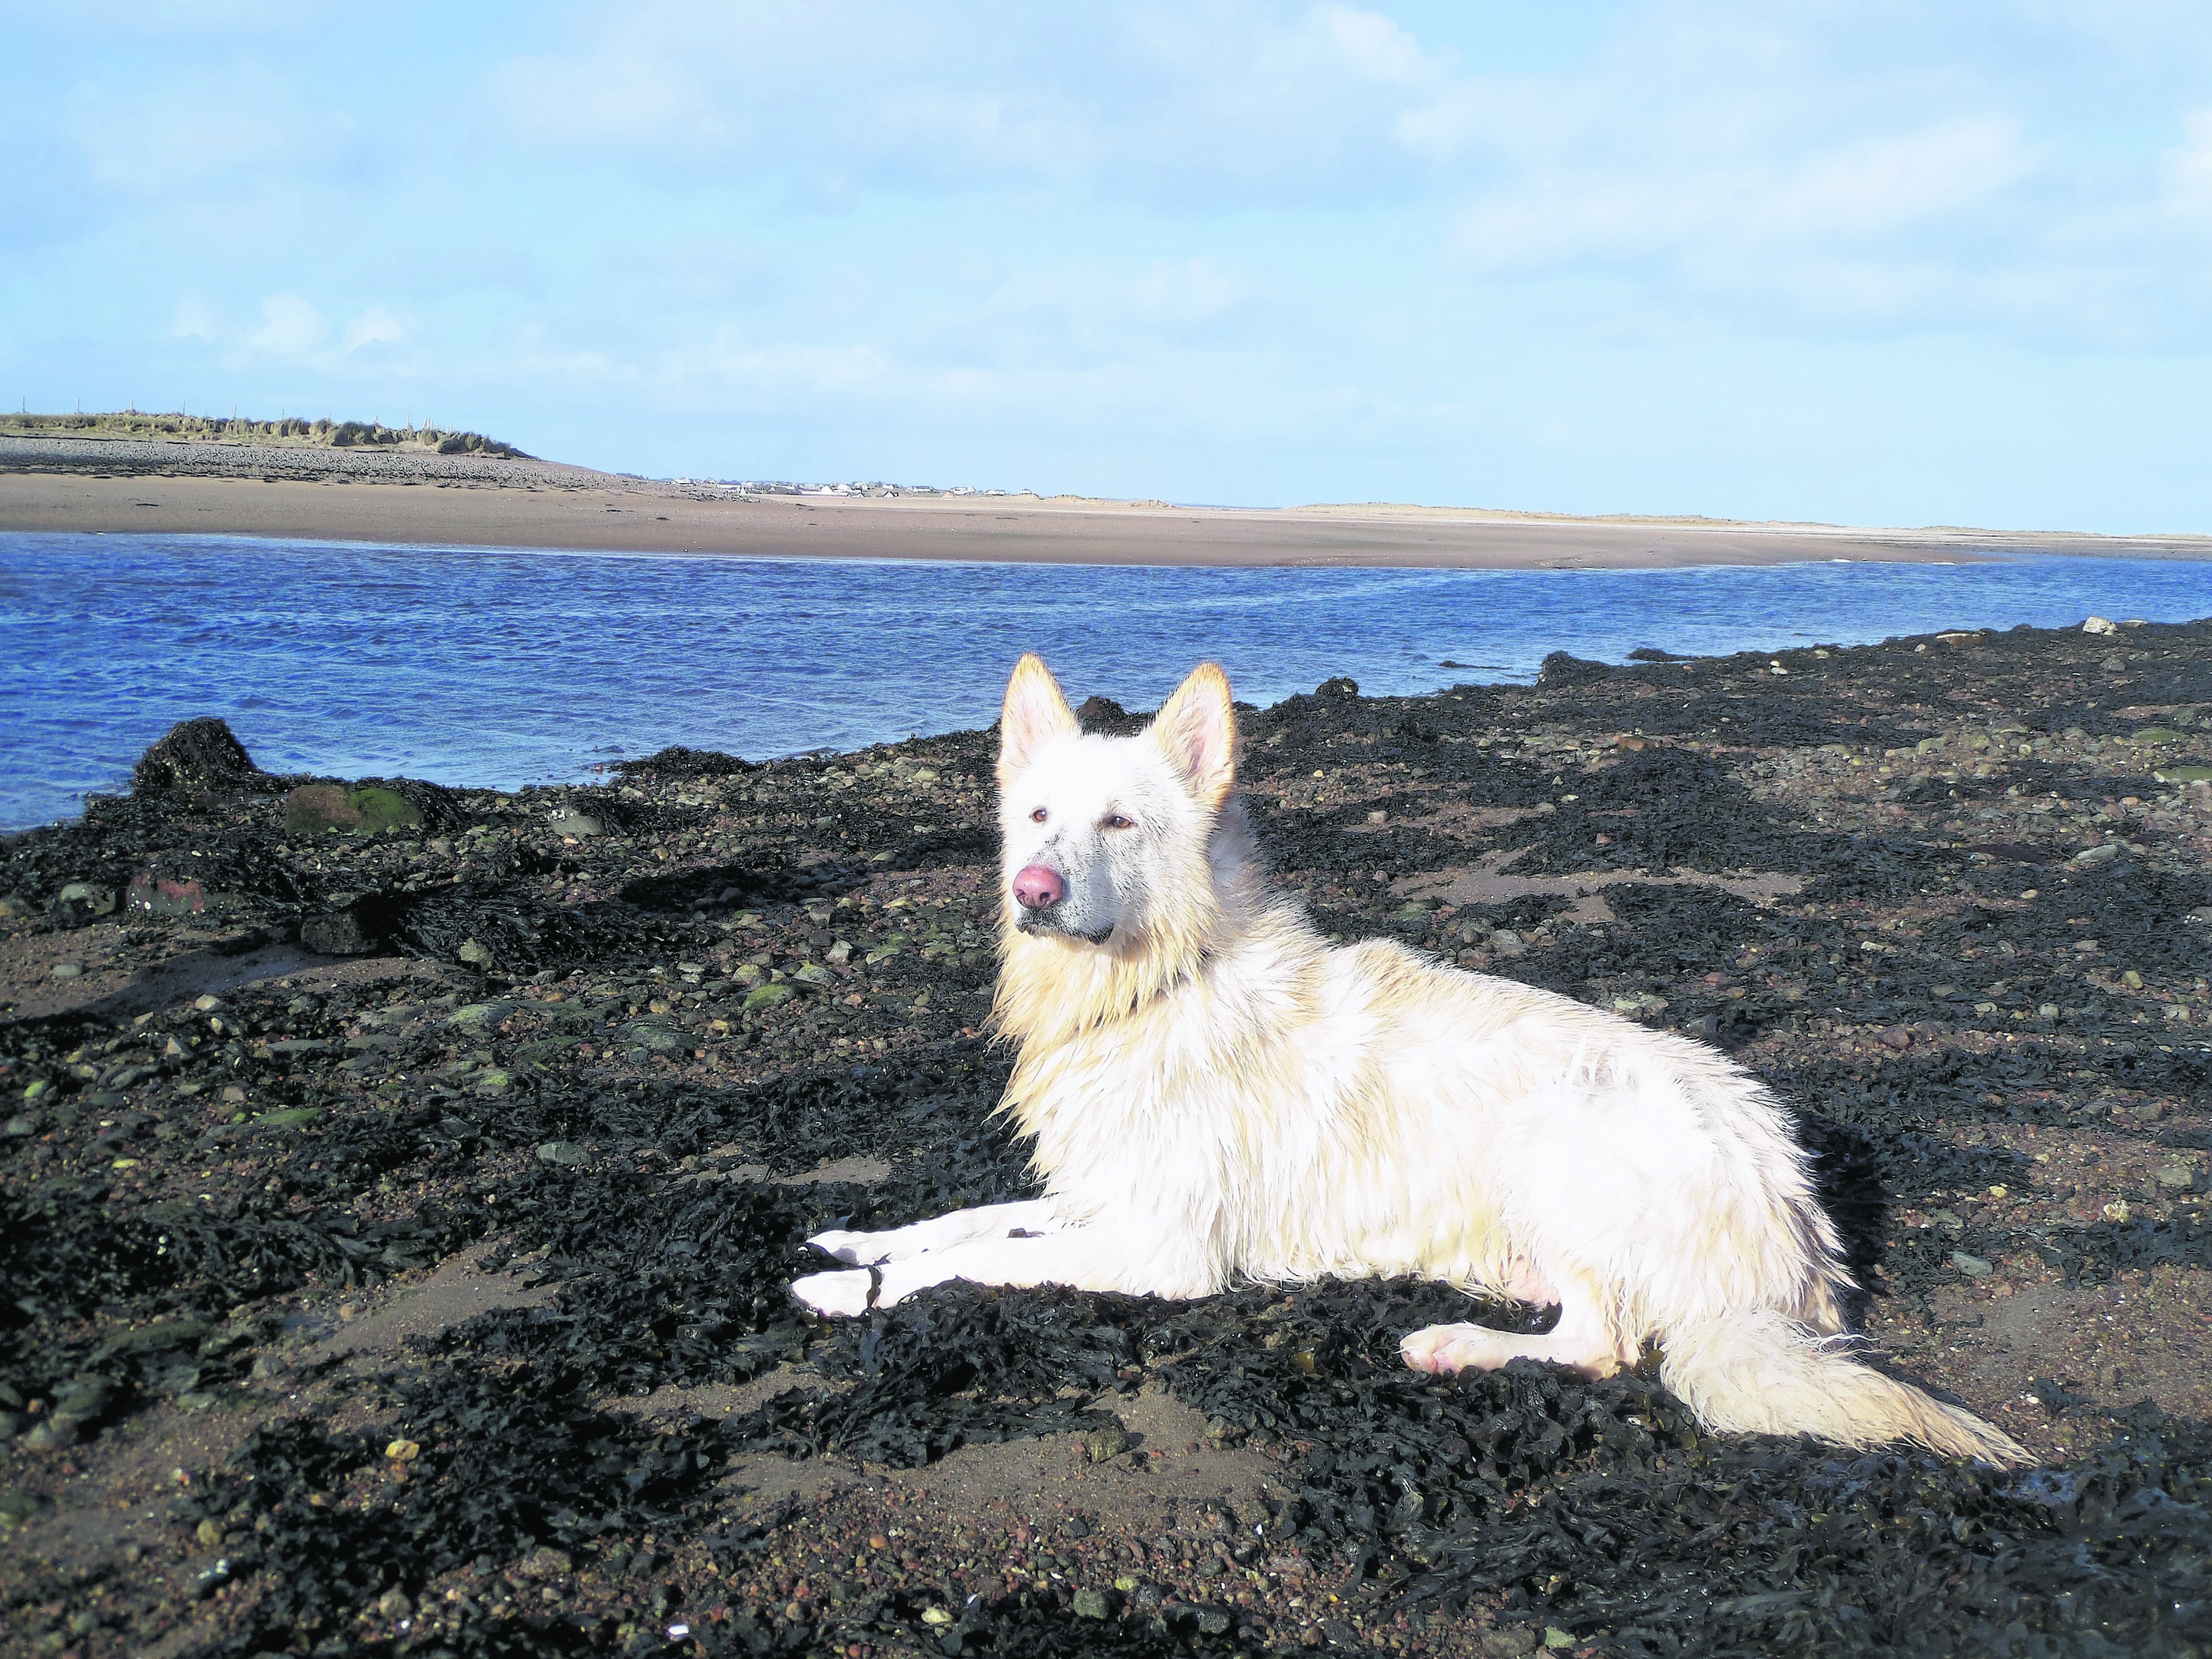 Yogi is a white German Shepherd and lives with Debbie Bremner in Stornoway, Lewis. Yogi is our canvas winner this week.